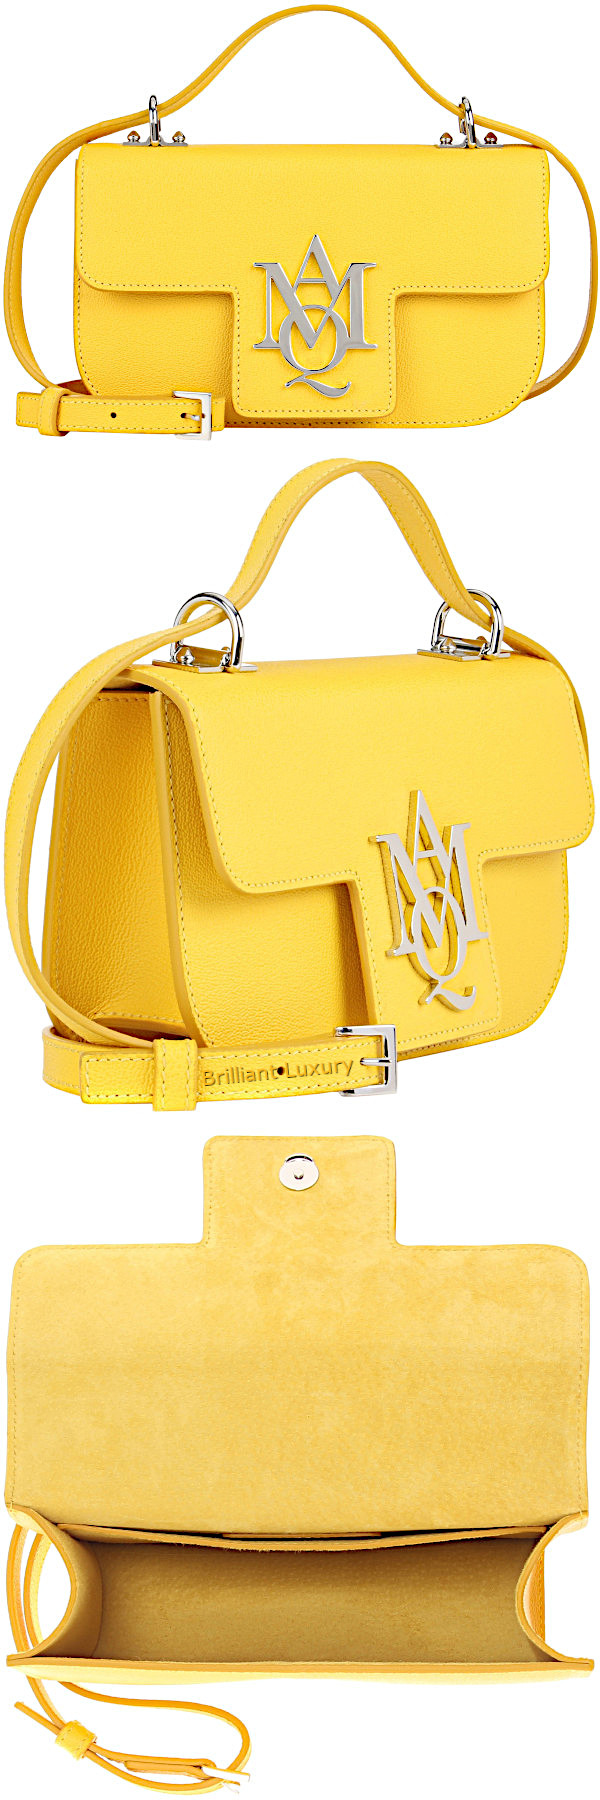 Alexander McQueen Insignia crossbody leather satchel in yellow